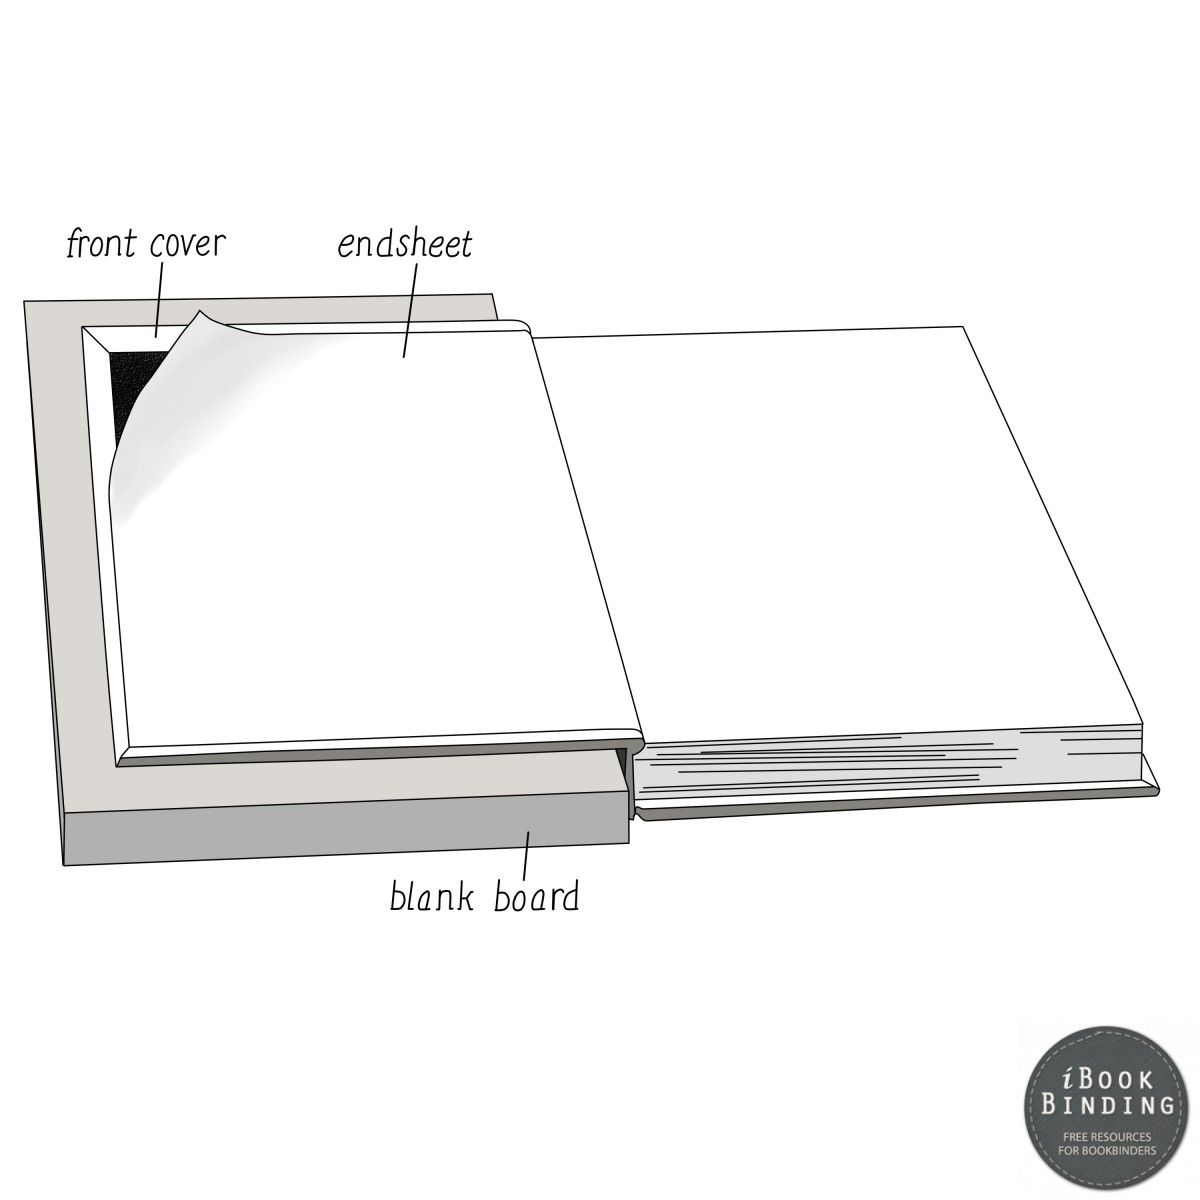 104-Aligning-Endsheets-with-Cover-Board-during-Bookbinding-Constuction.jpeg (1200×1200)